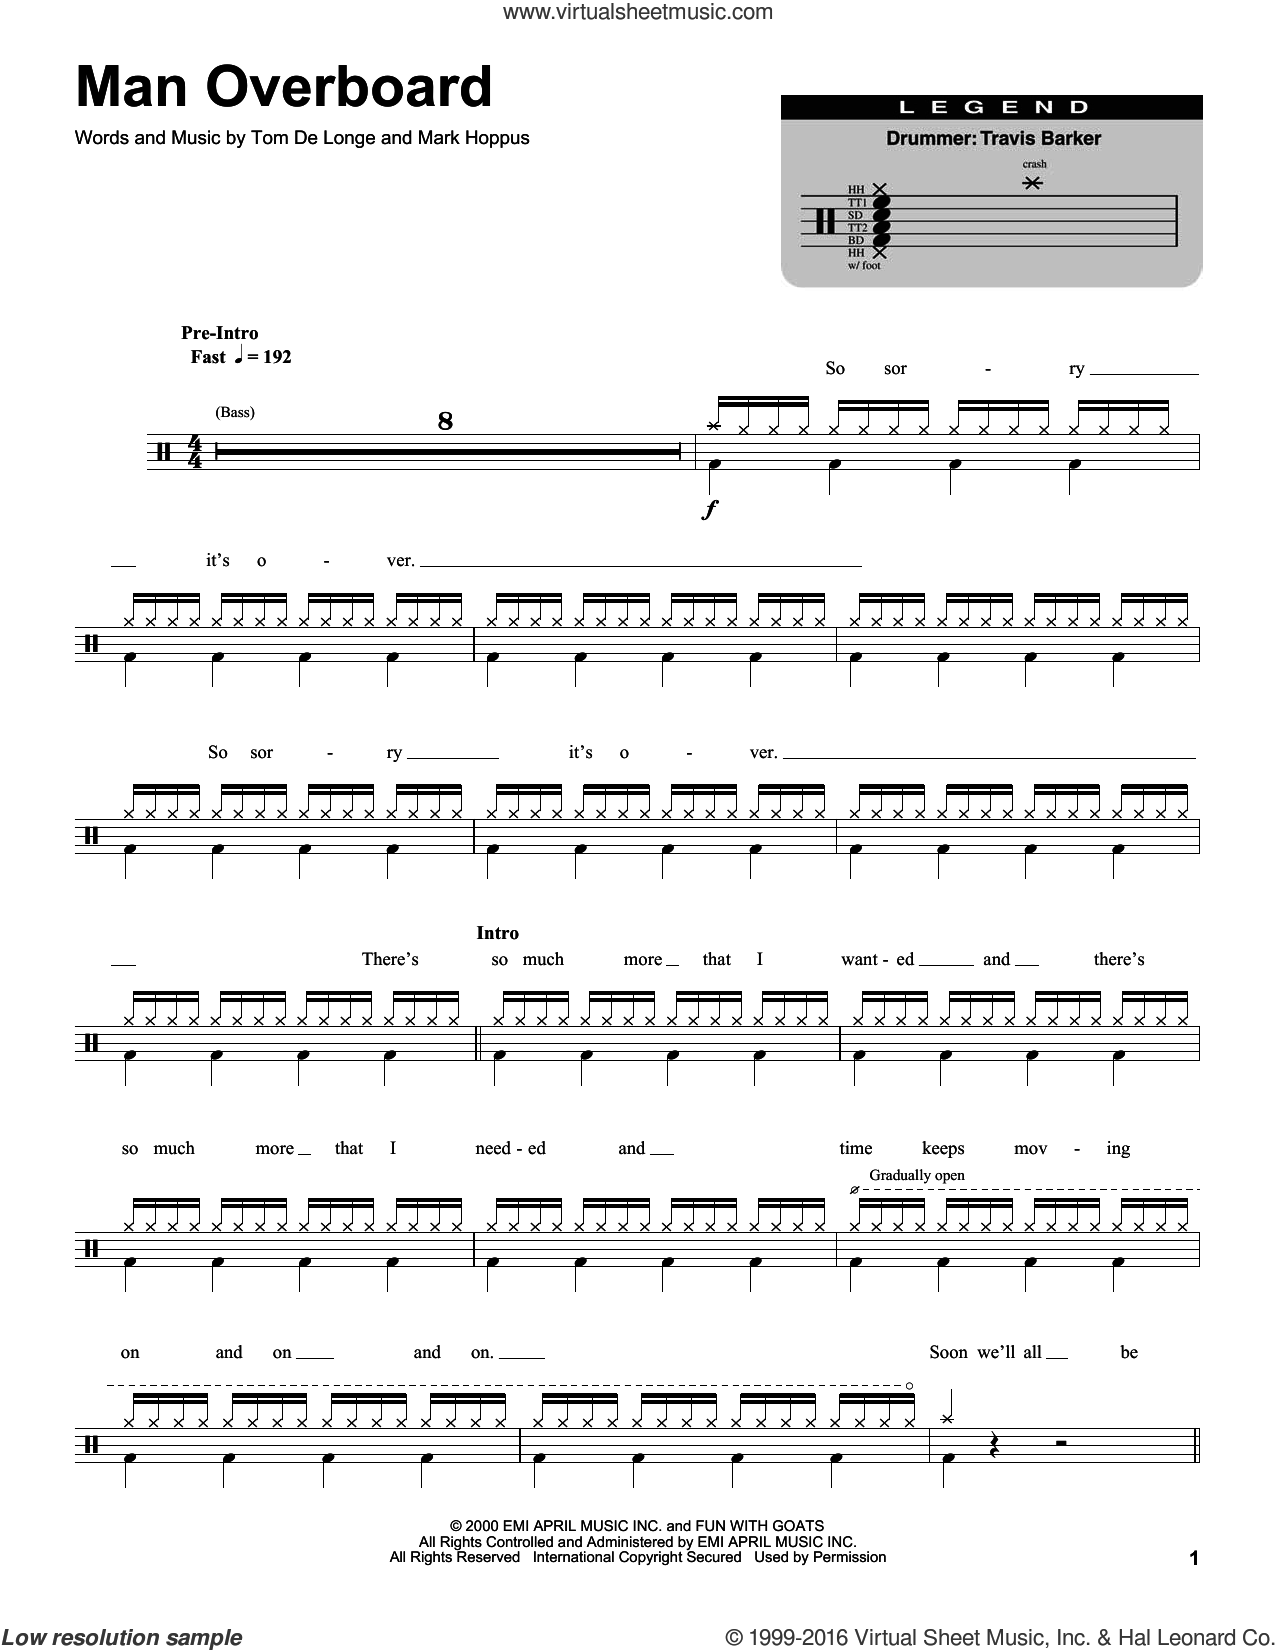 Man Overboard sheet music for drums by Blink 182, Mark Hoppus and Tom DeLonge, intermediate skill level